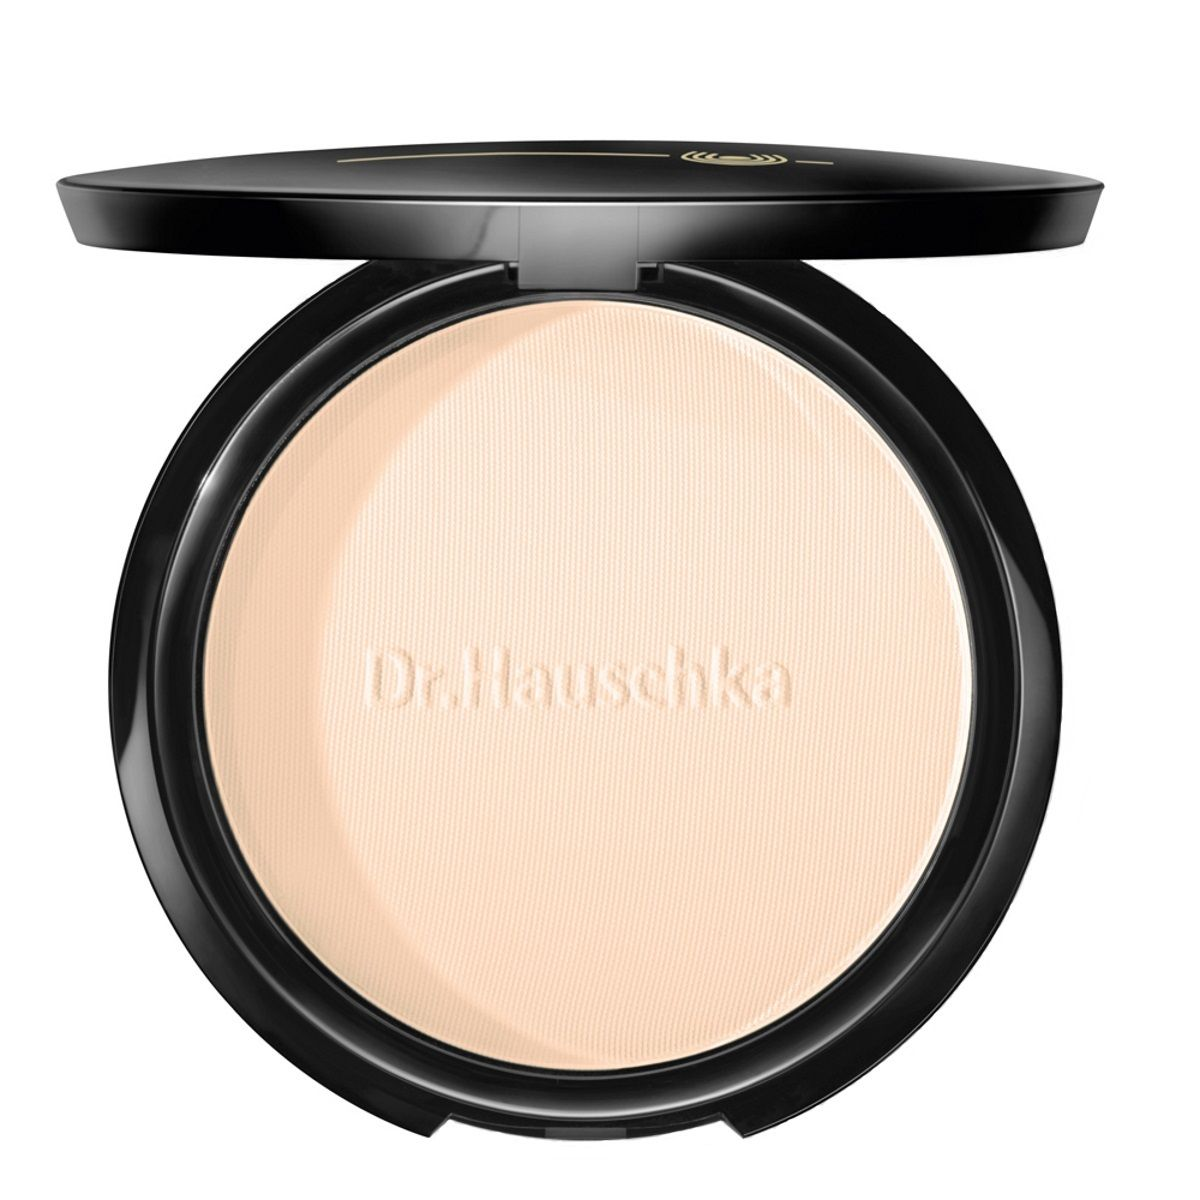 Translucent Face Powder, Compact Finale by DR. HAUSCHKA